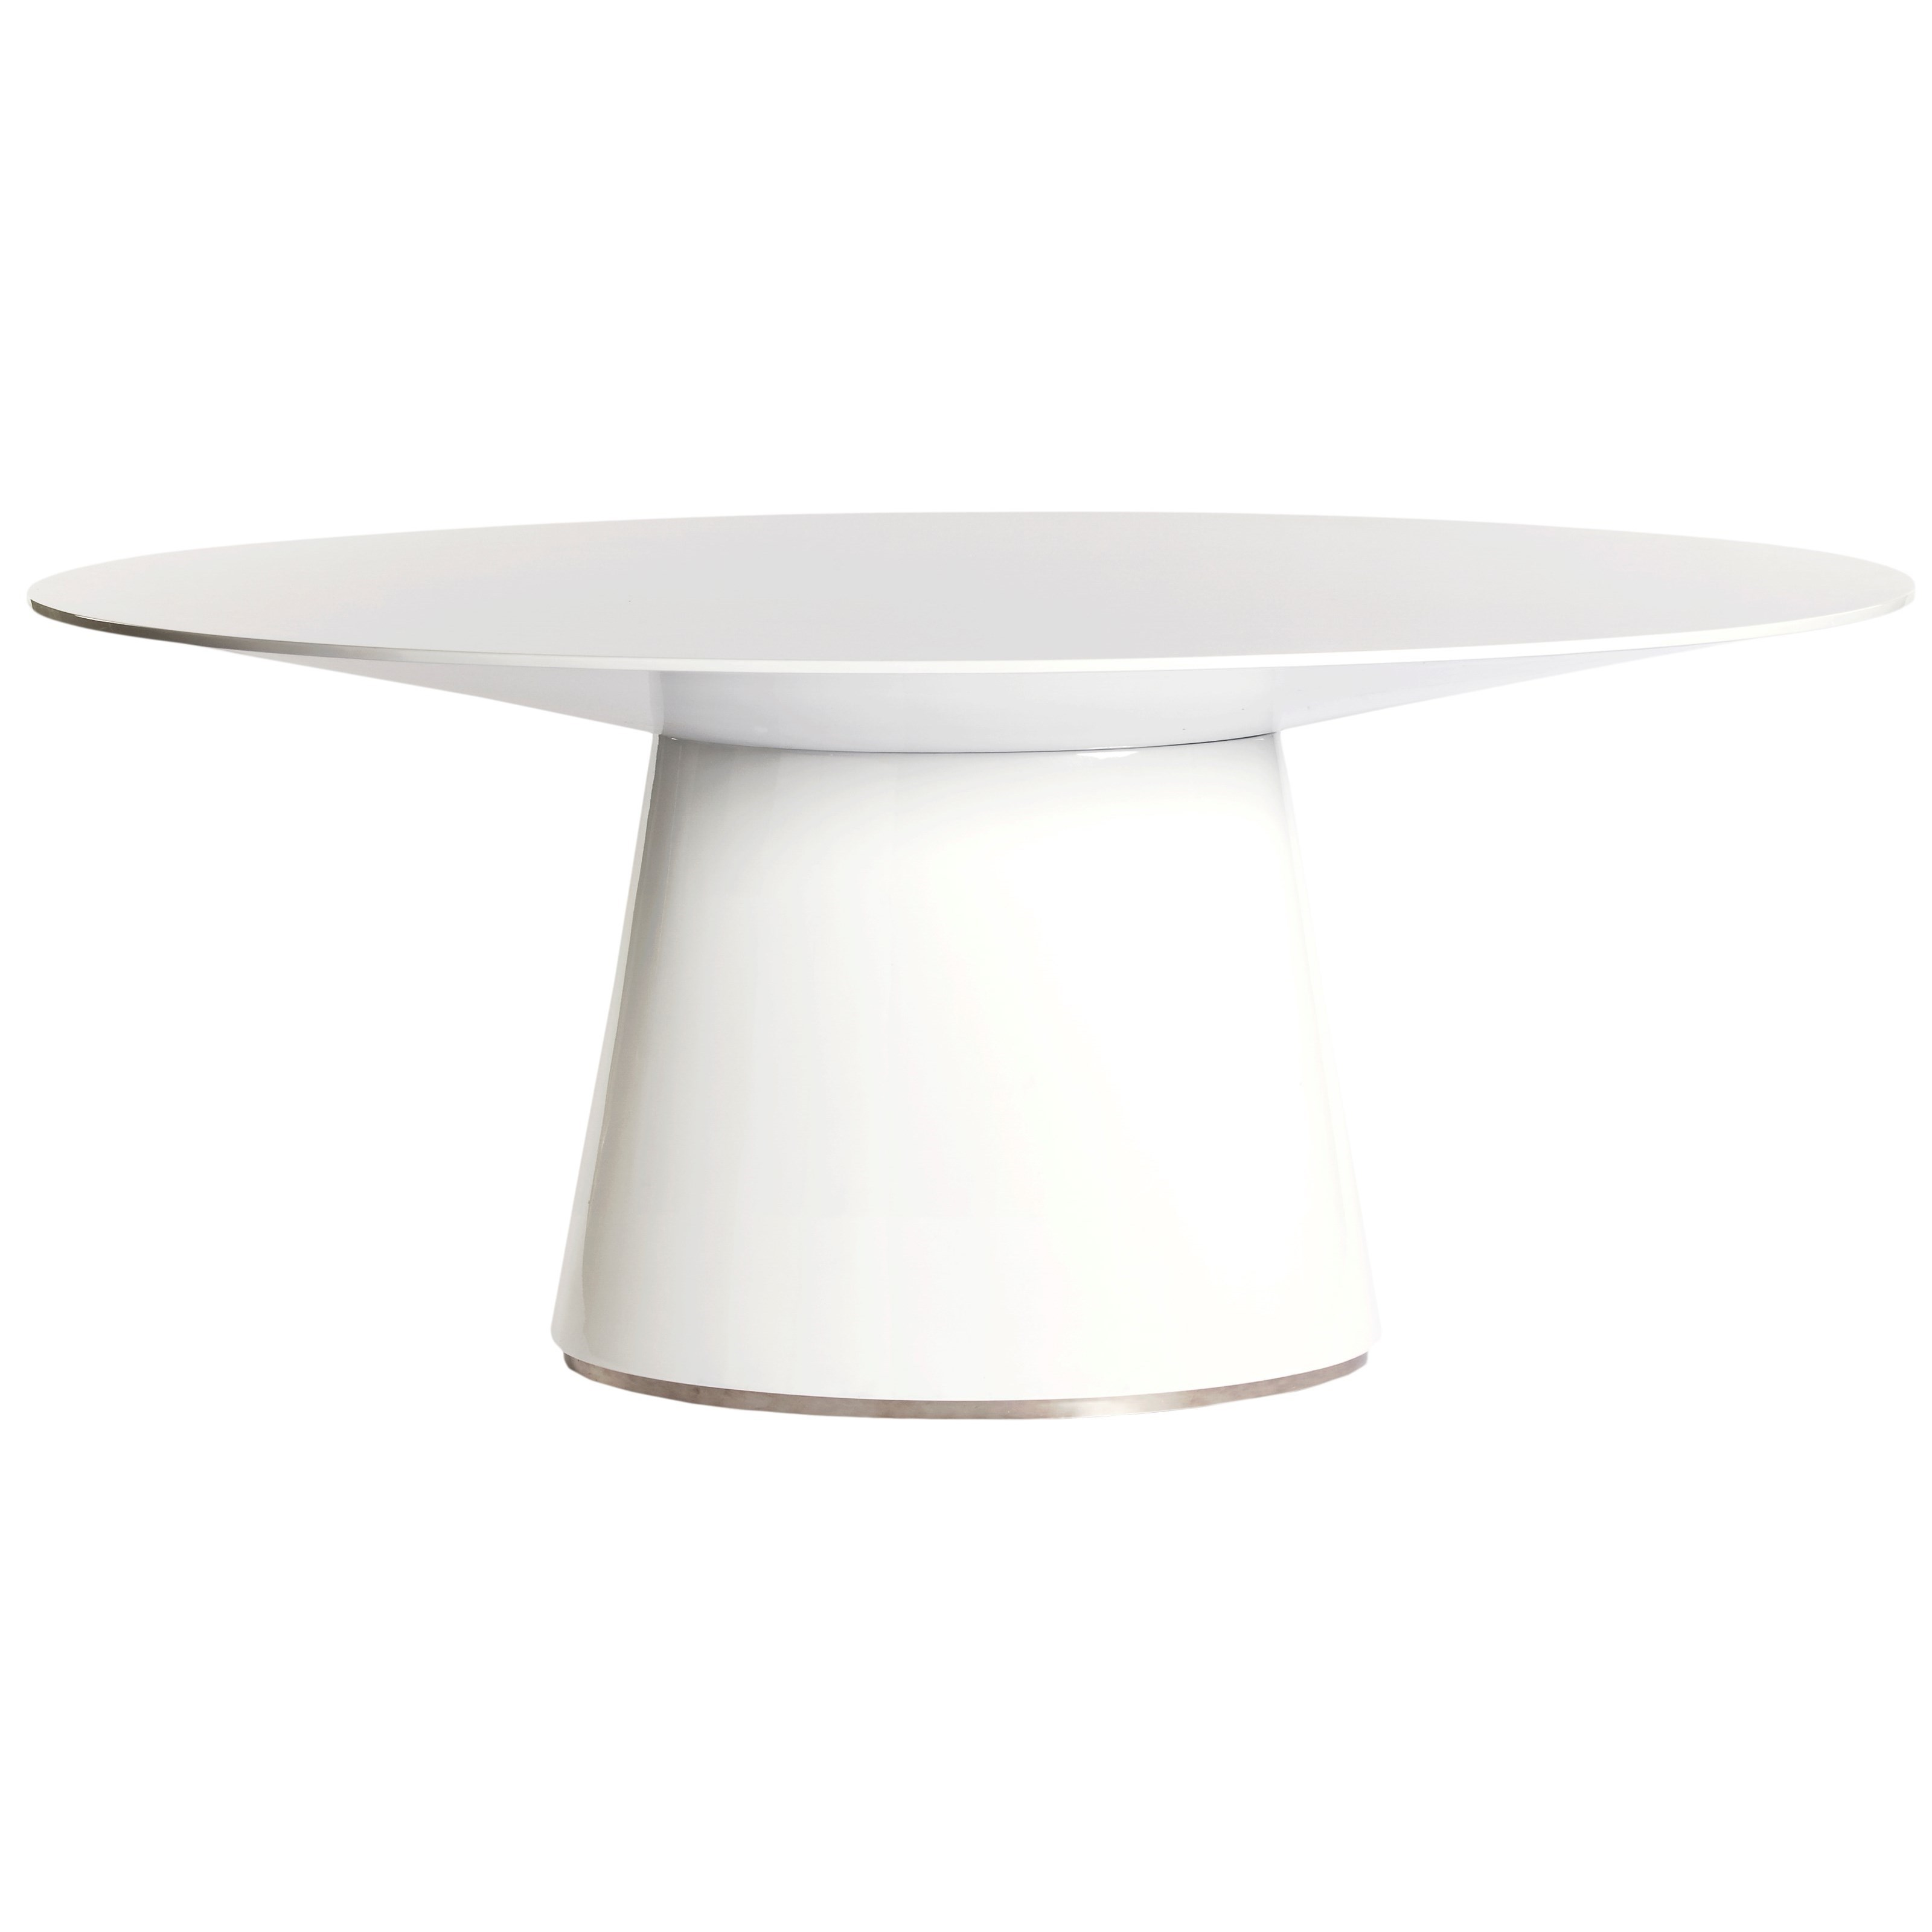 Otago Oval Dining Table by Moe's Home Collection at Stoney Creek Furniture